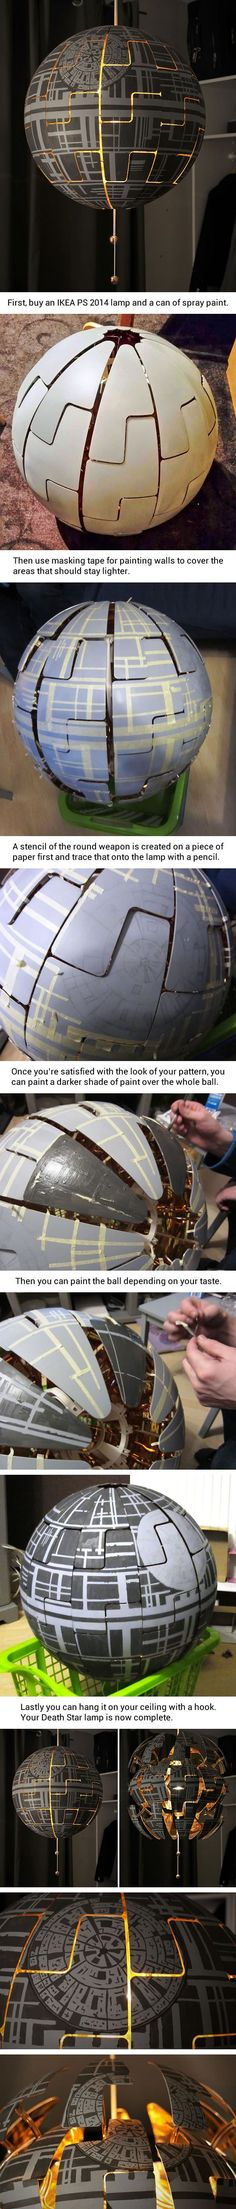 Coole Idee für Star Wars Fans Death Star lamp (by Lylelo) Star Wars Crafts, Geek Crafts, Fun Crafts, Diy And Crafts, Creative Crafts, Wood Crafts, Diy Man, Star Wars Zimmer, Mason Jars